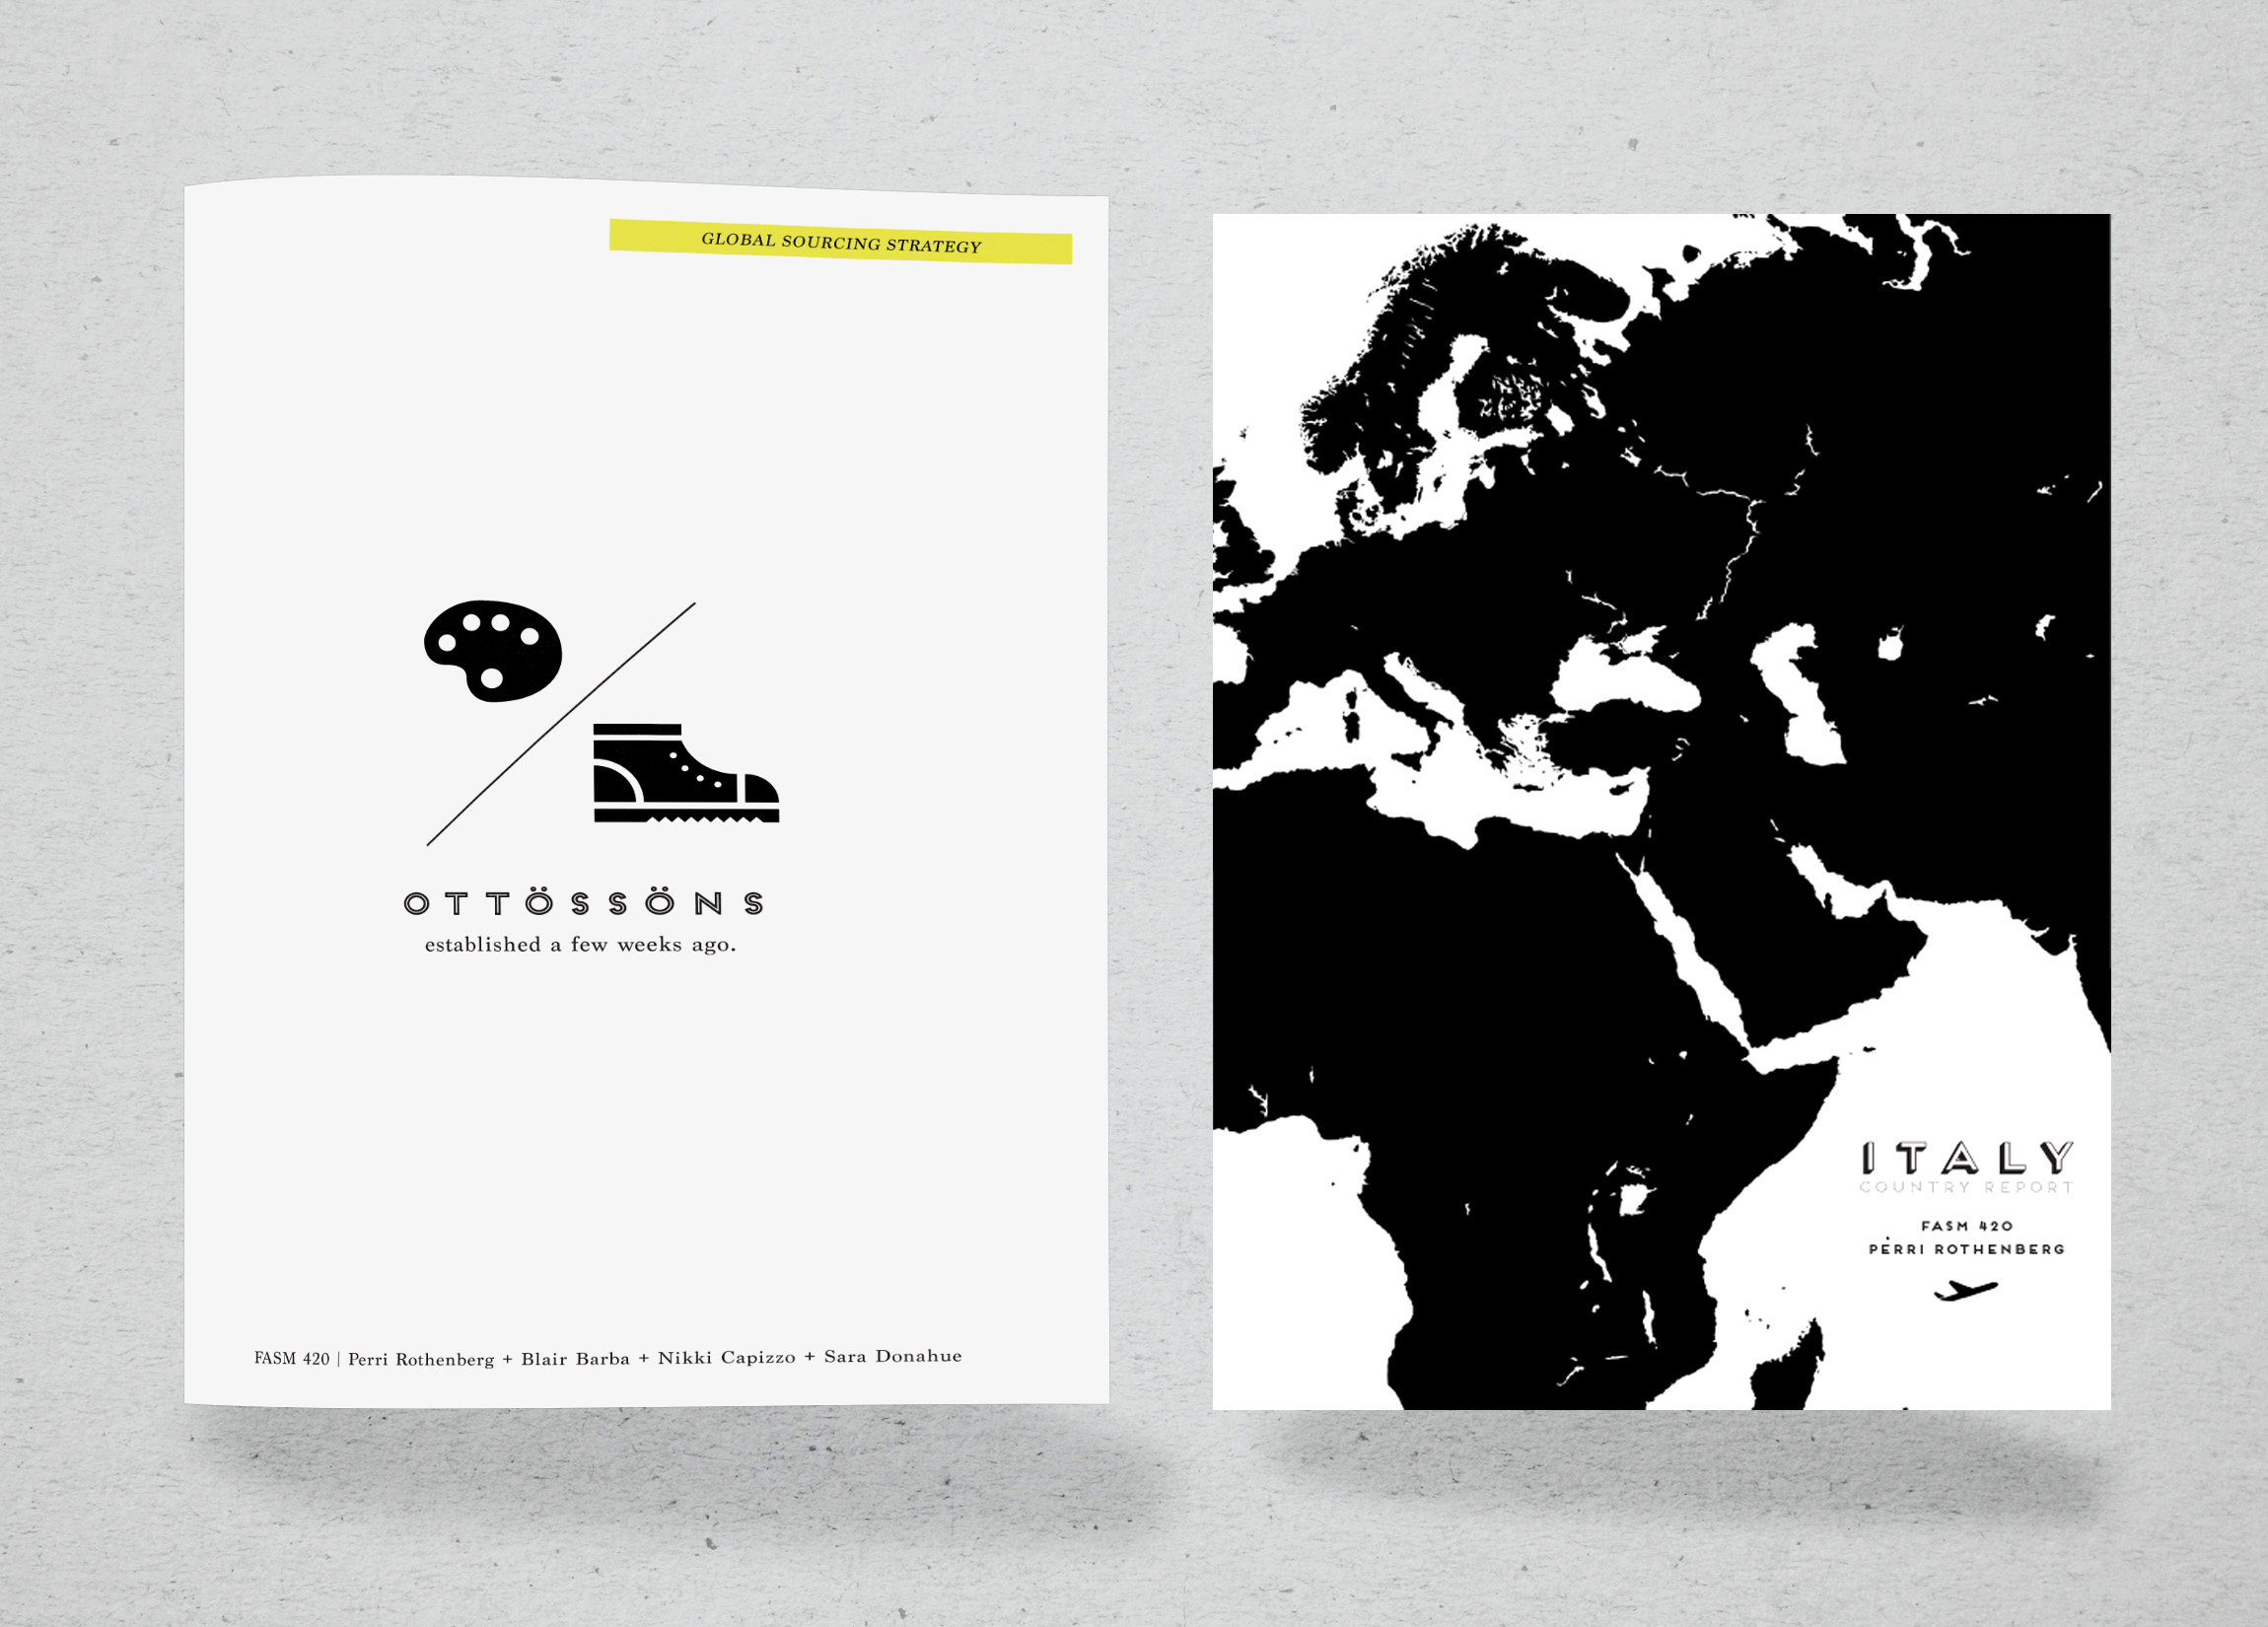 Covers for final report. Left: Ottossons Global Sourcing Strategy, Right: Italy Country Report.